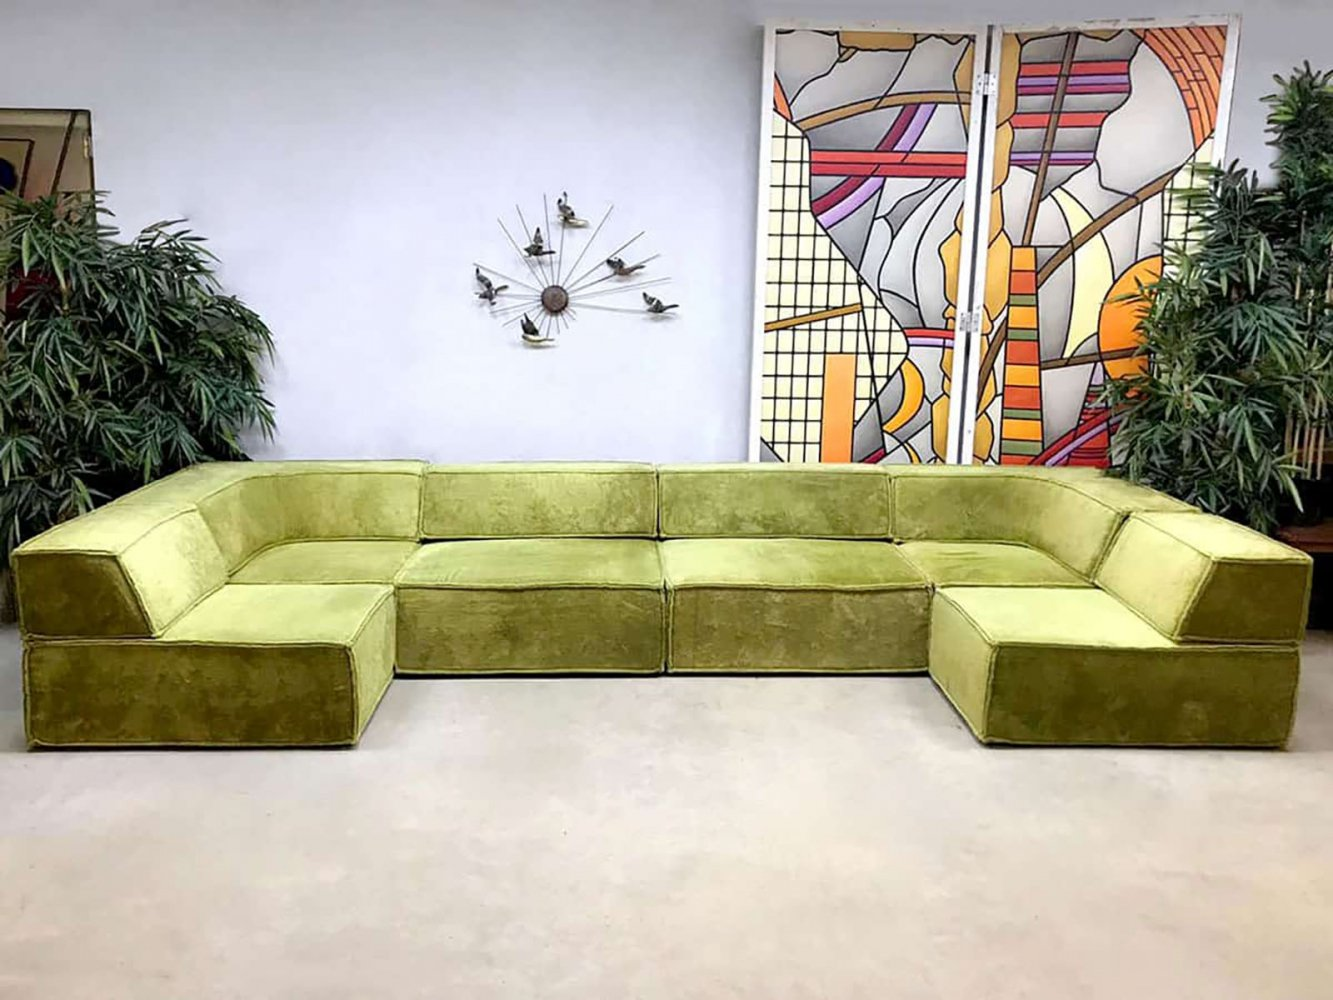 Vintage design modular sofa by Team Form AG for COR Sitzcomfort